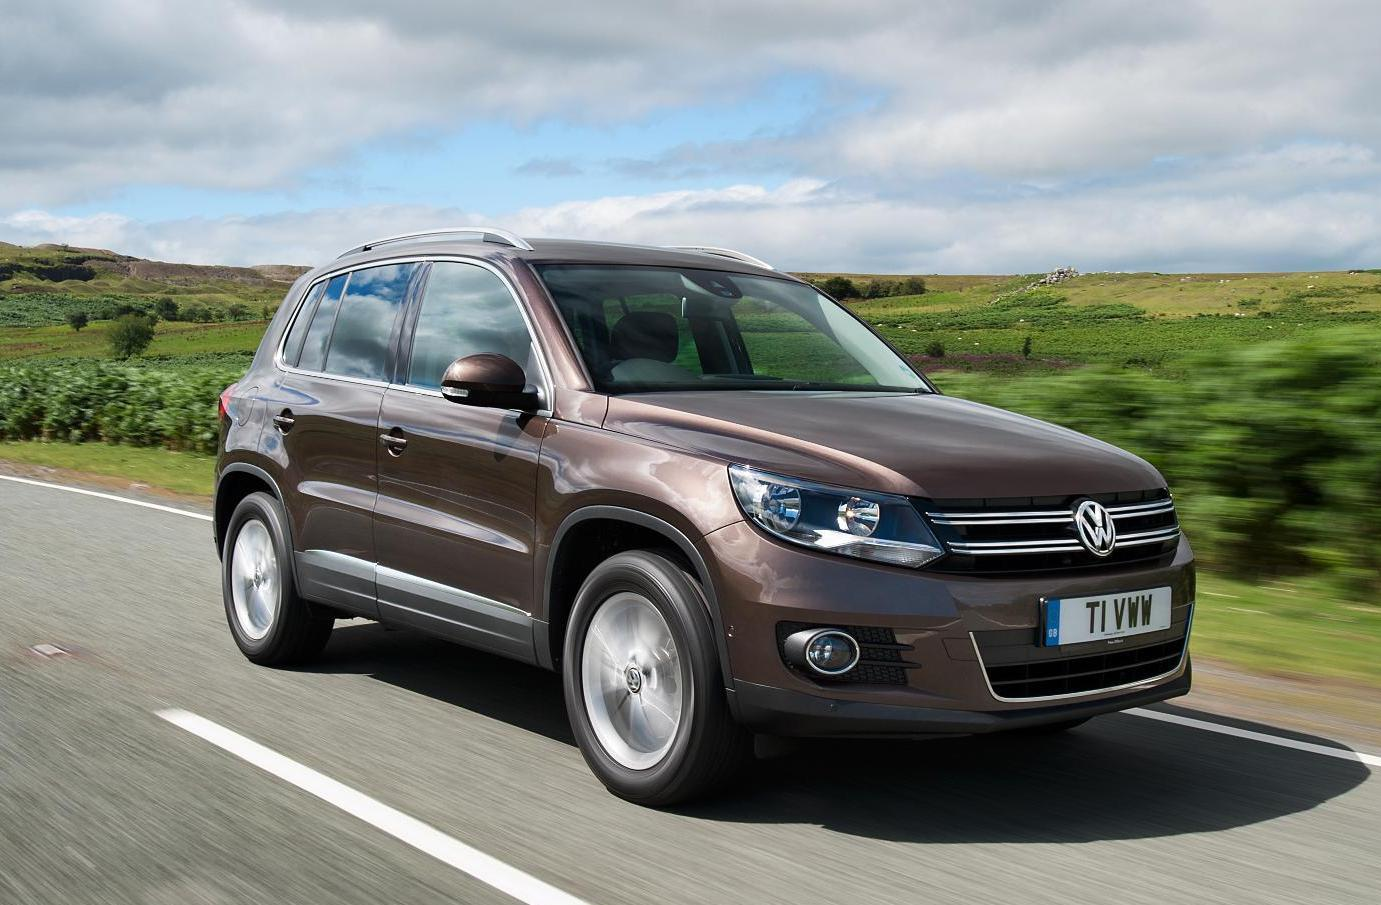 Volkswagen Tiguan SUV price, specs, photos & launch date ...